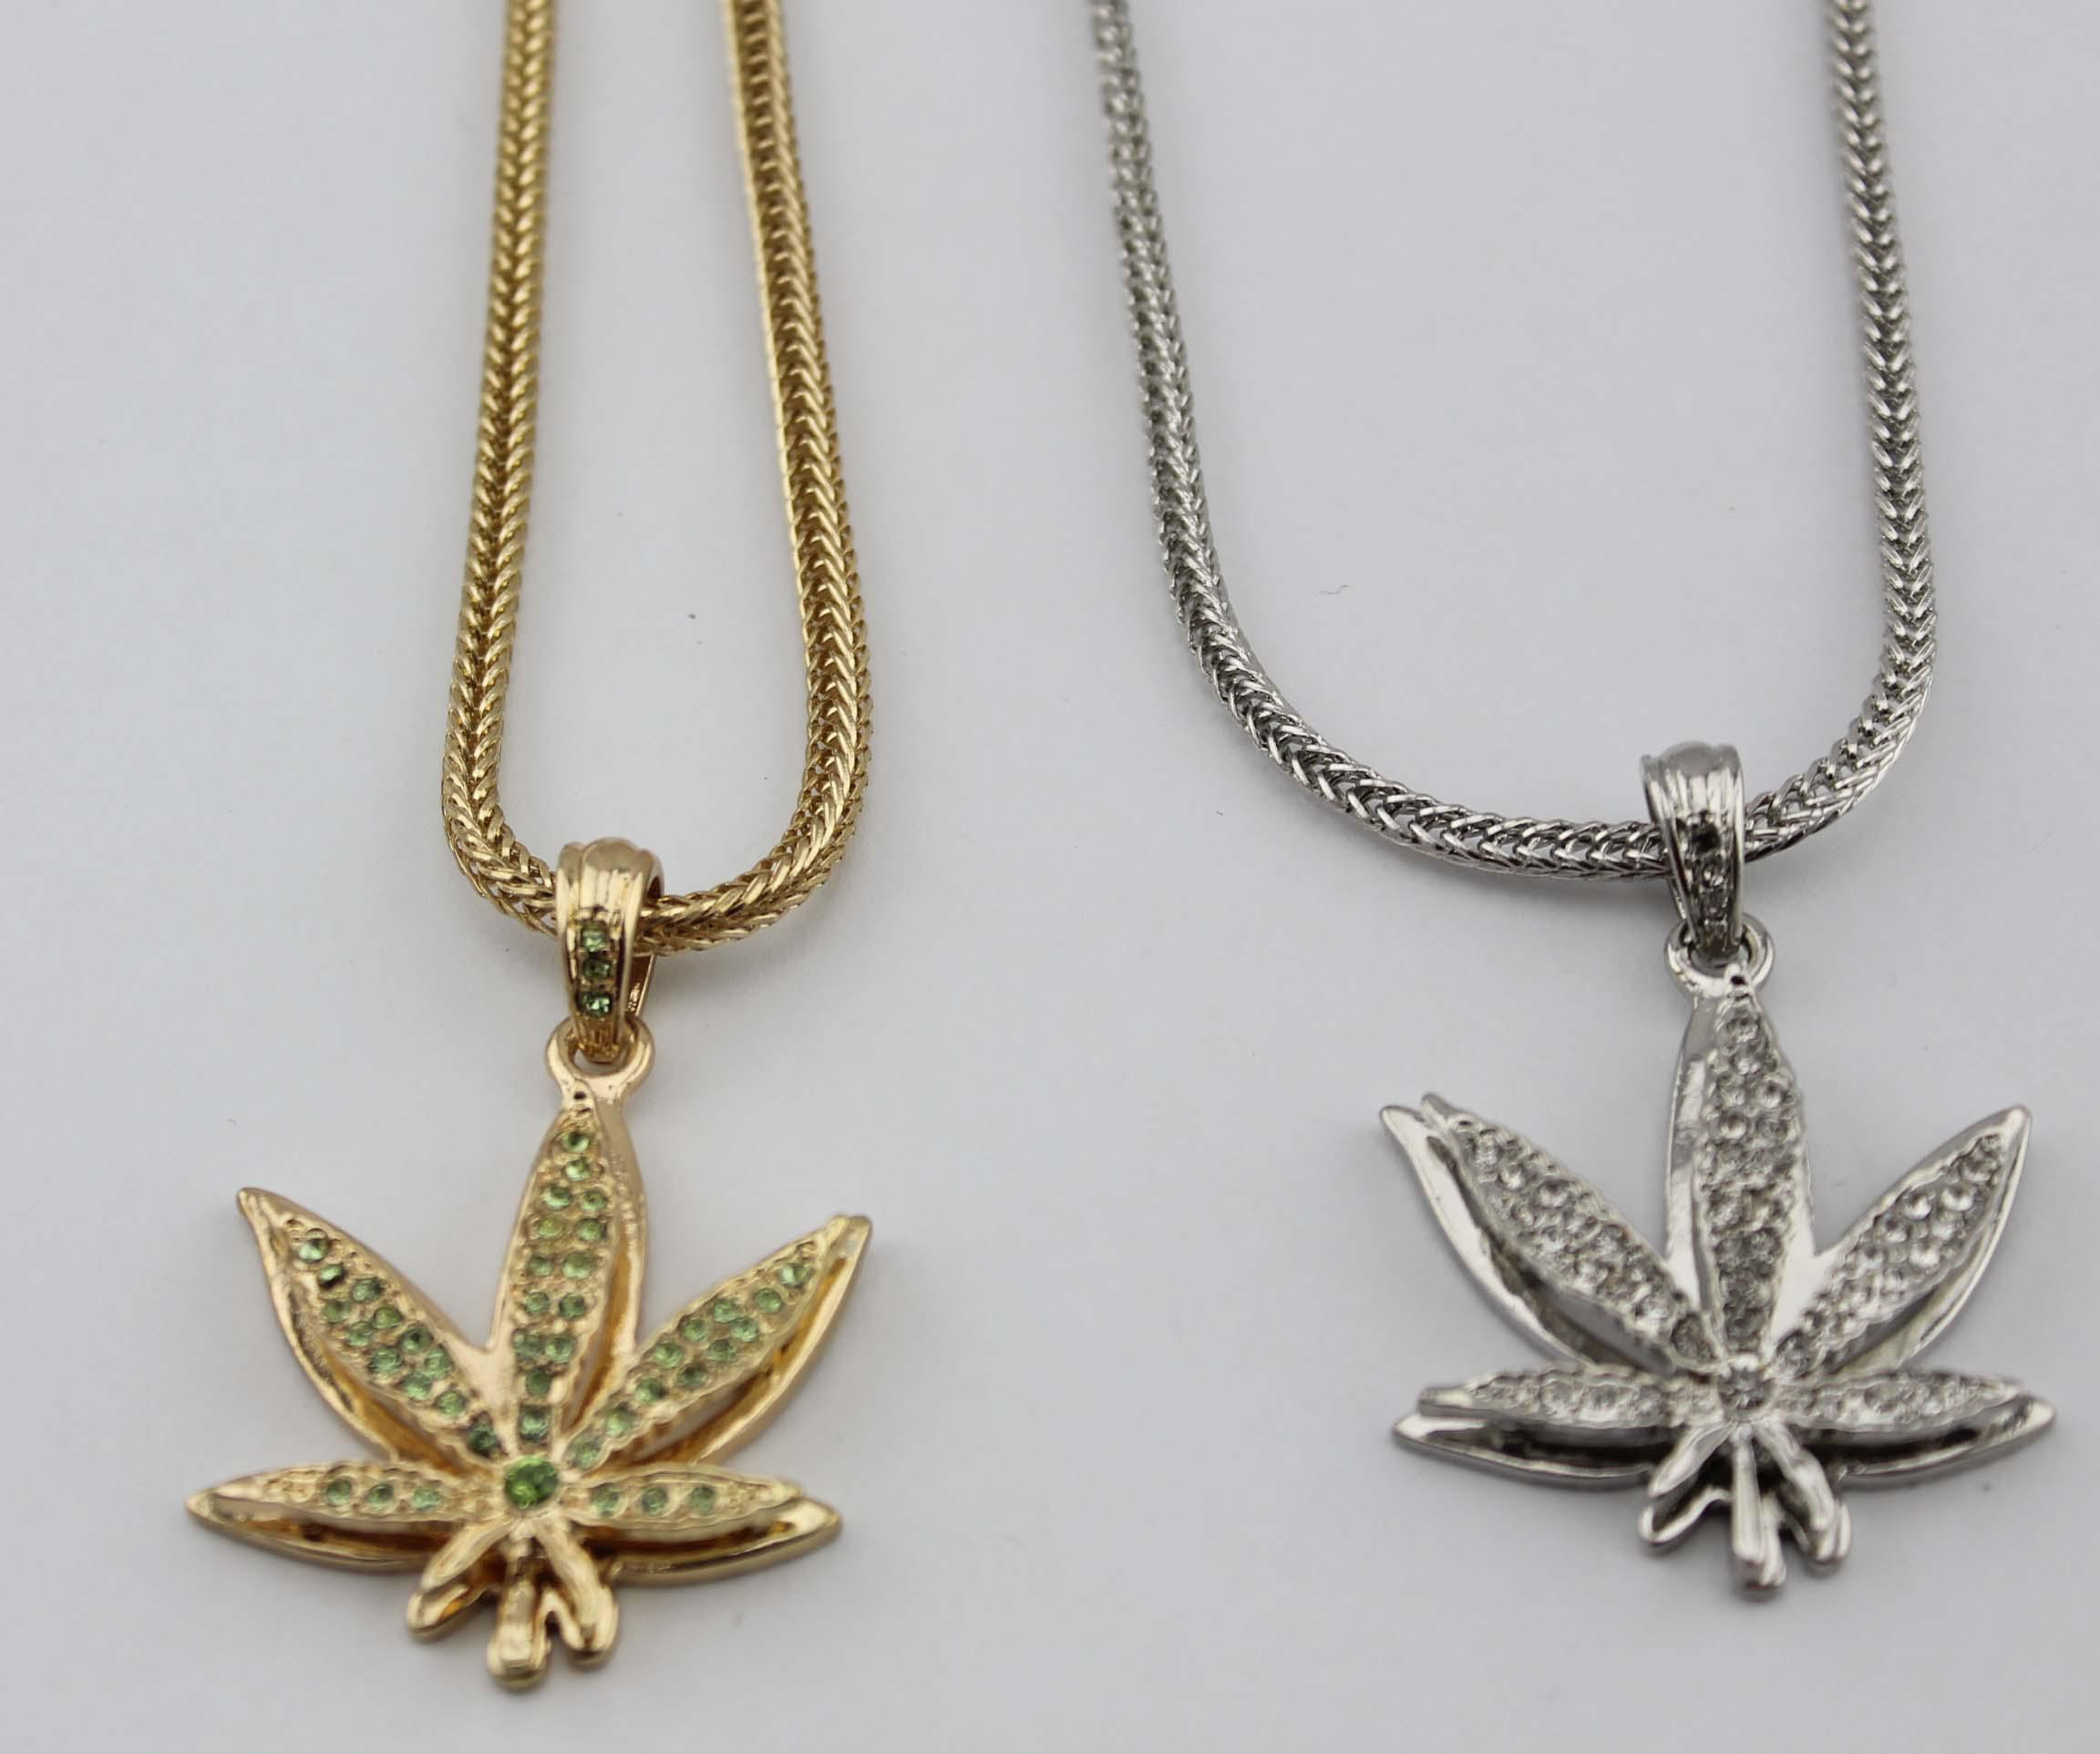 Wholesale hip hop jewelry men jewelry bling bling necklace iced wholesale hip hop jewelry men jewelry bling bling necklace iced out flower pendants rappers faveriote heart pendants necklaces silver necklaces from mozeypictures Images